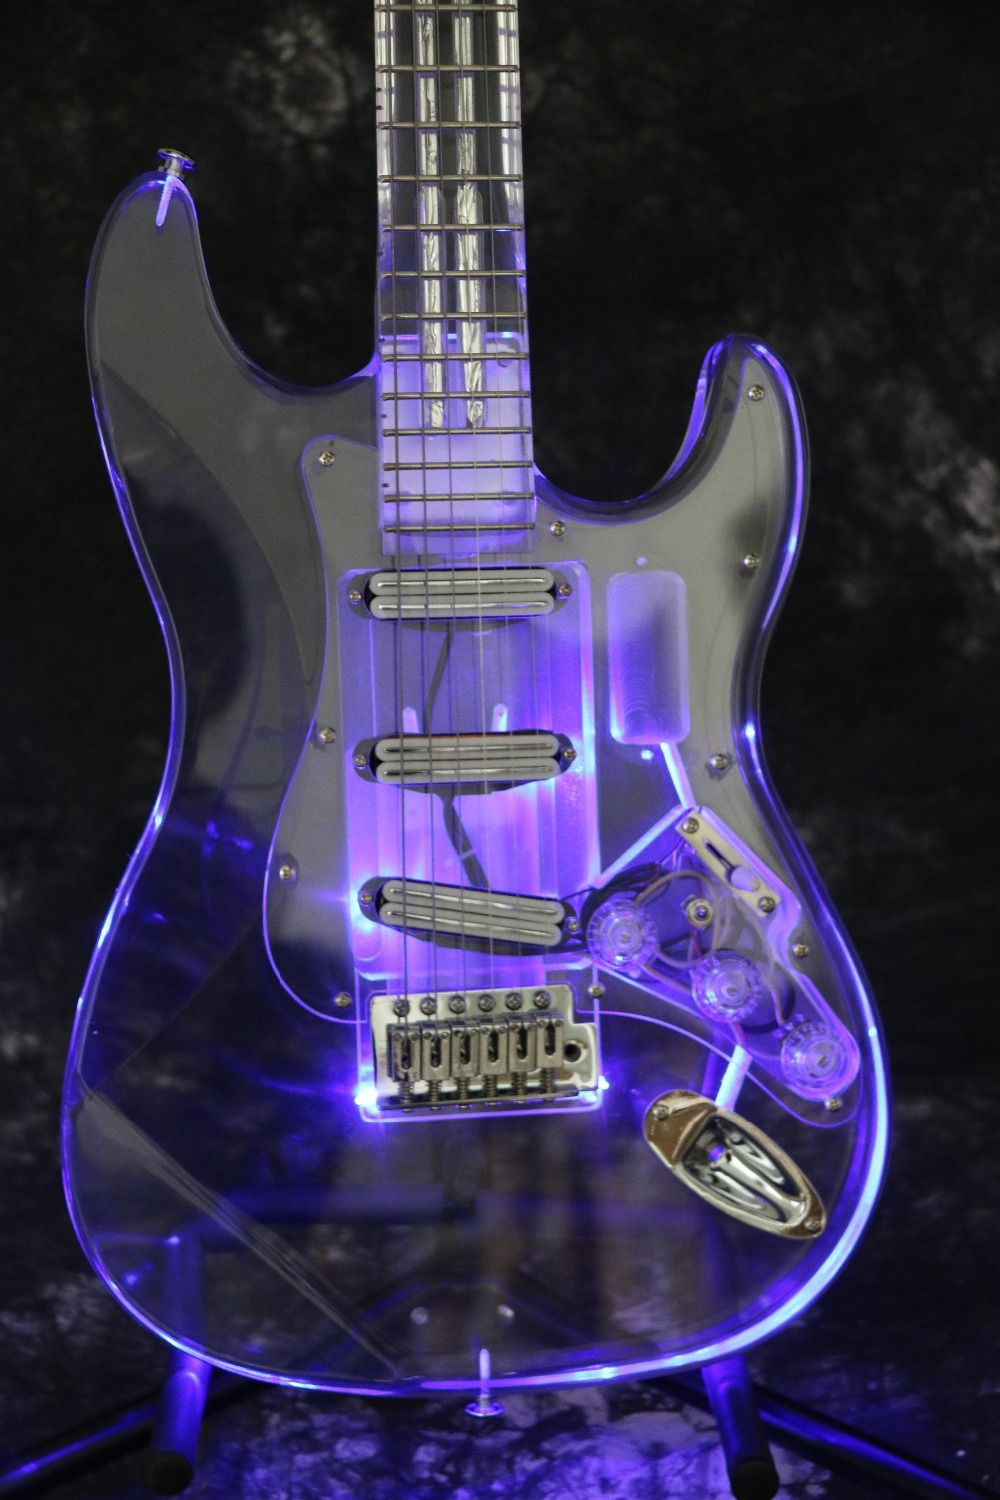 Instock Starshine SR-LBC-030 colorful crystal style electric guitar led light body and neck full acrylic body and neck